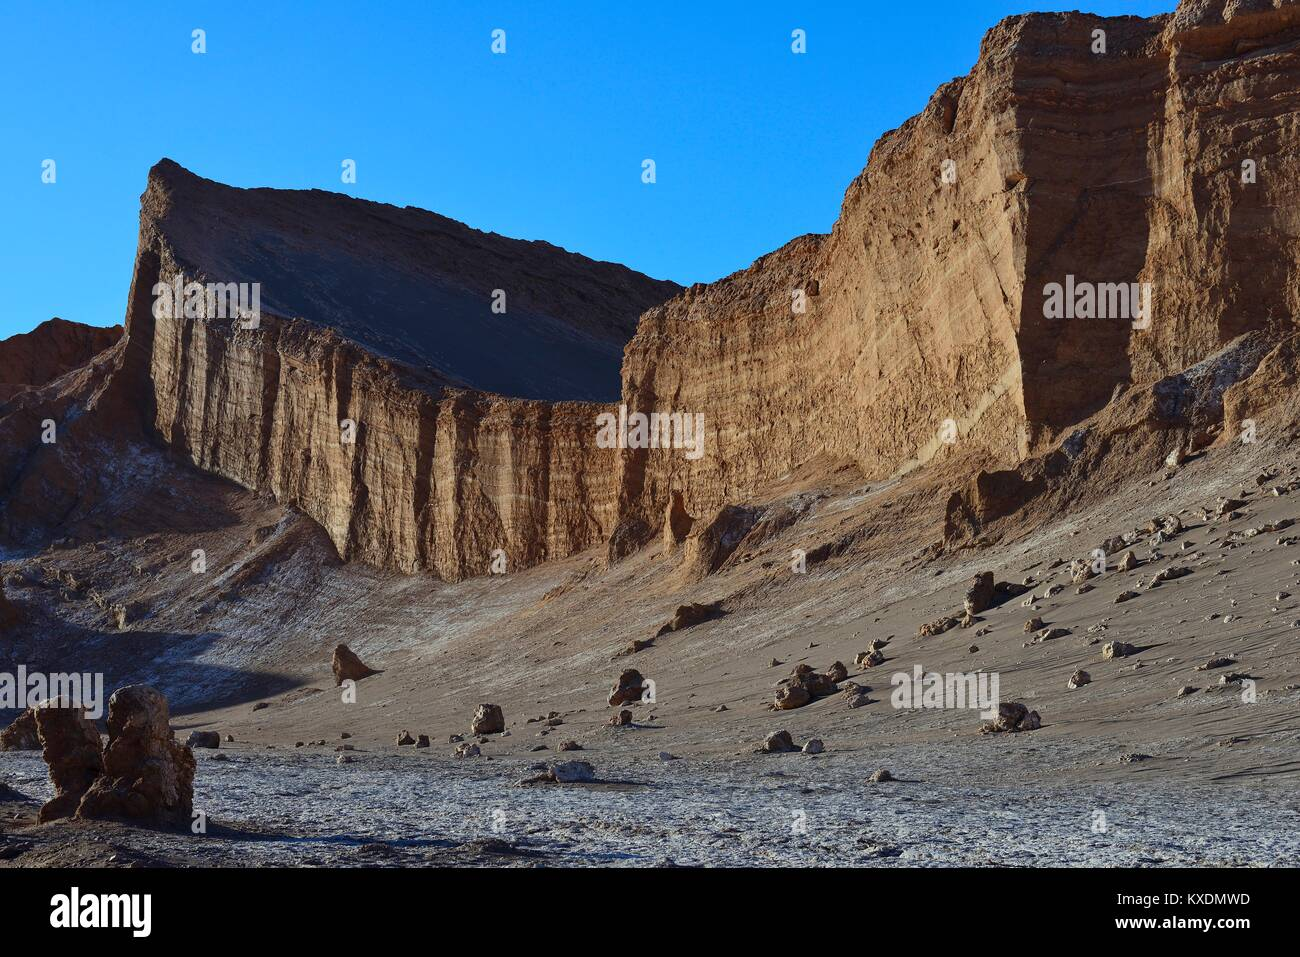 Rock face in the Valley of the Moon, Valle de la Luna, San Pedro de Atacama, Antofagasta, Chile - Stock Image